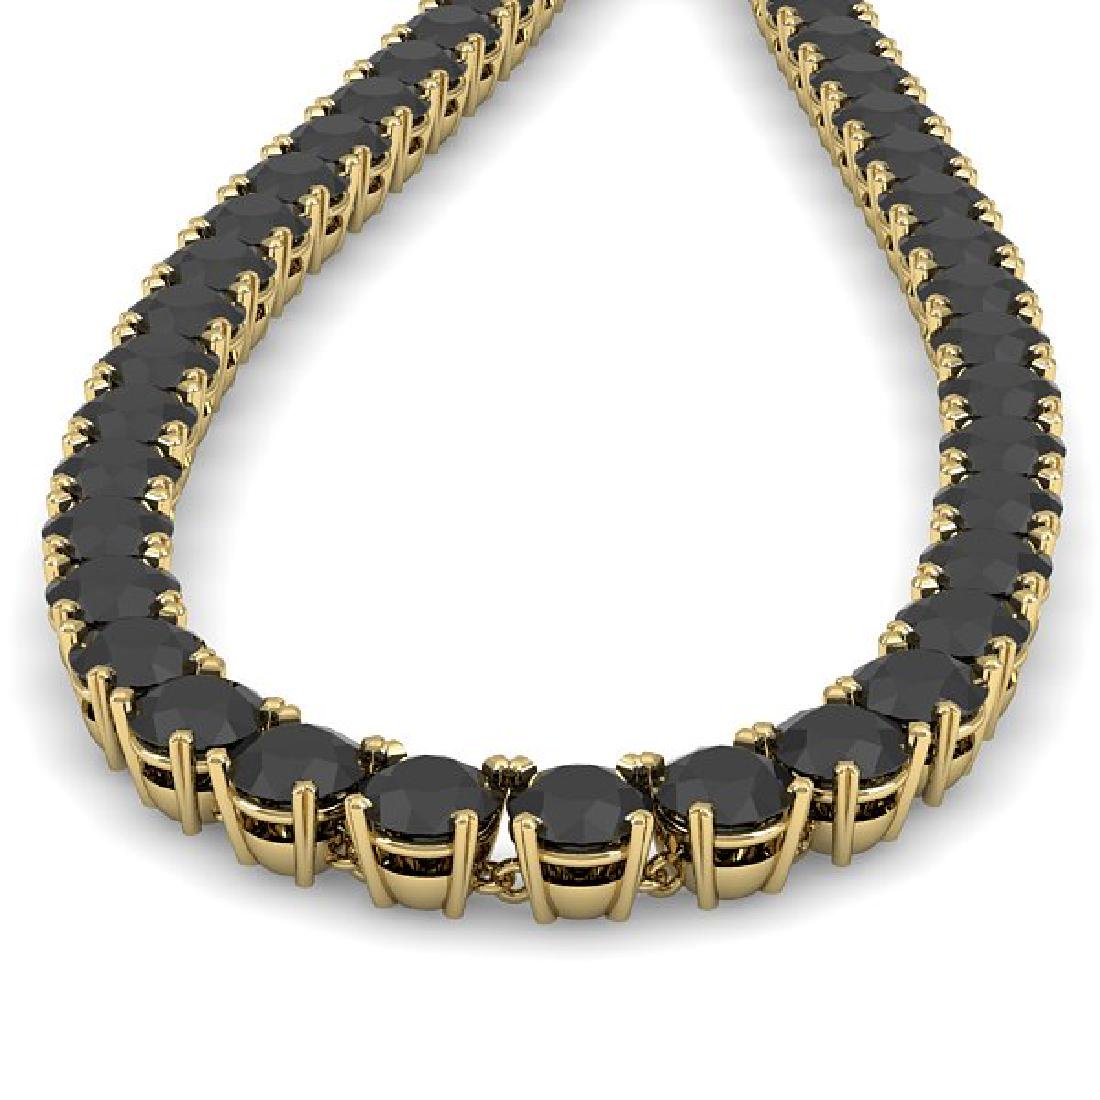 40 CTW Certified Black VS Diamond Necklace 18K Yellow - 2